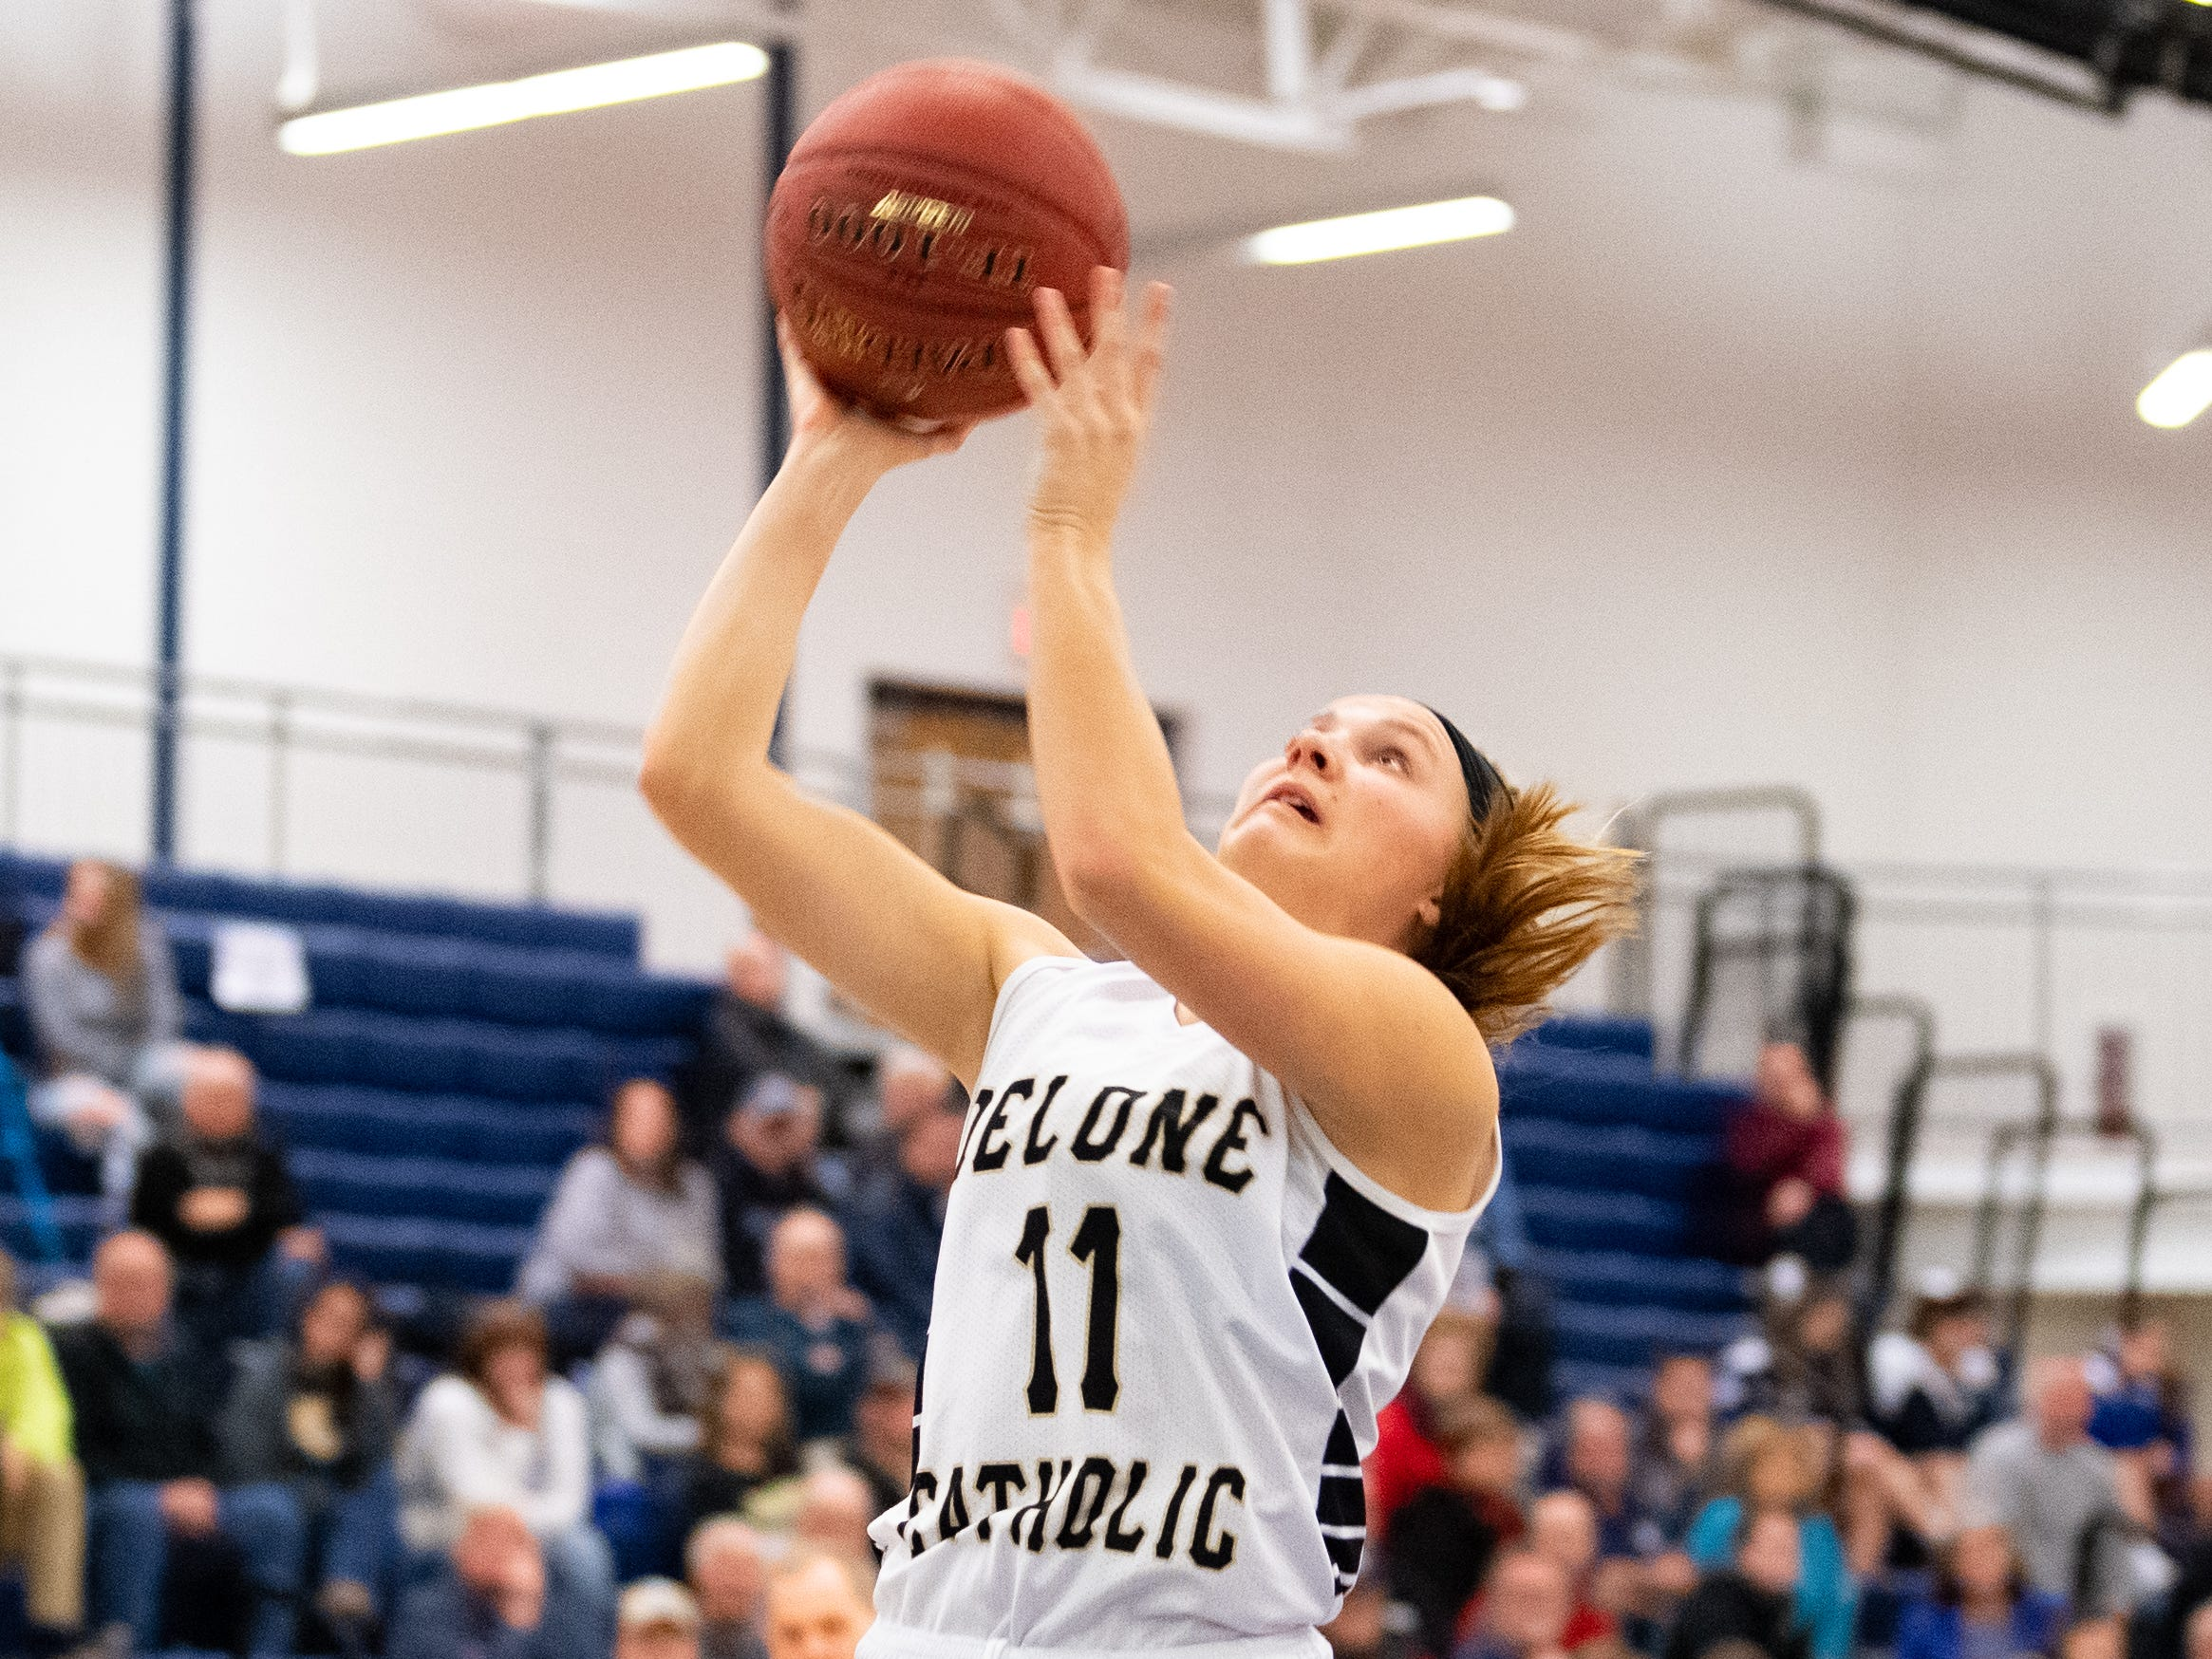 Riley Vingsen (11) lays the ball up during the PIAA first round girls' basketball game between Delone Catholic and Lewisburg Area Friday, March 8, 2019 at West York Area High School. The Squires lead the Green Dragons.